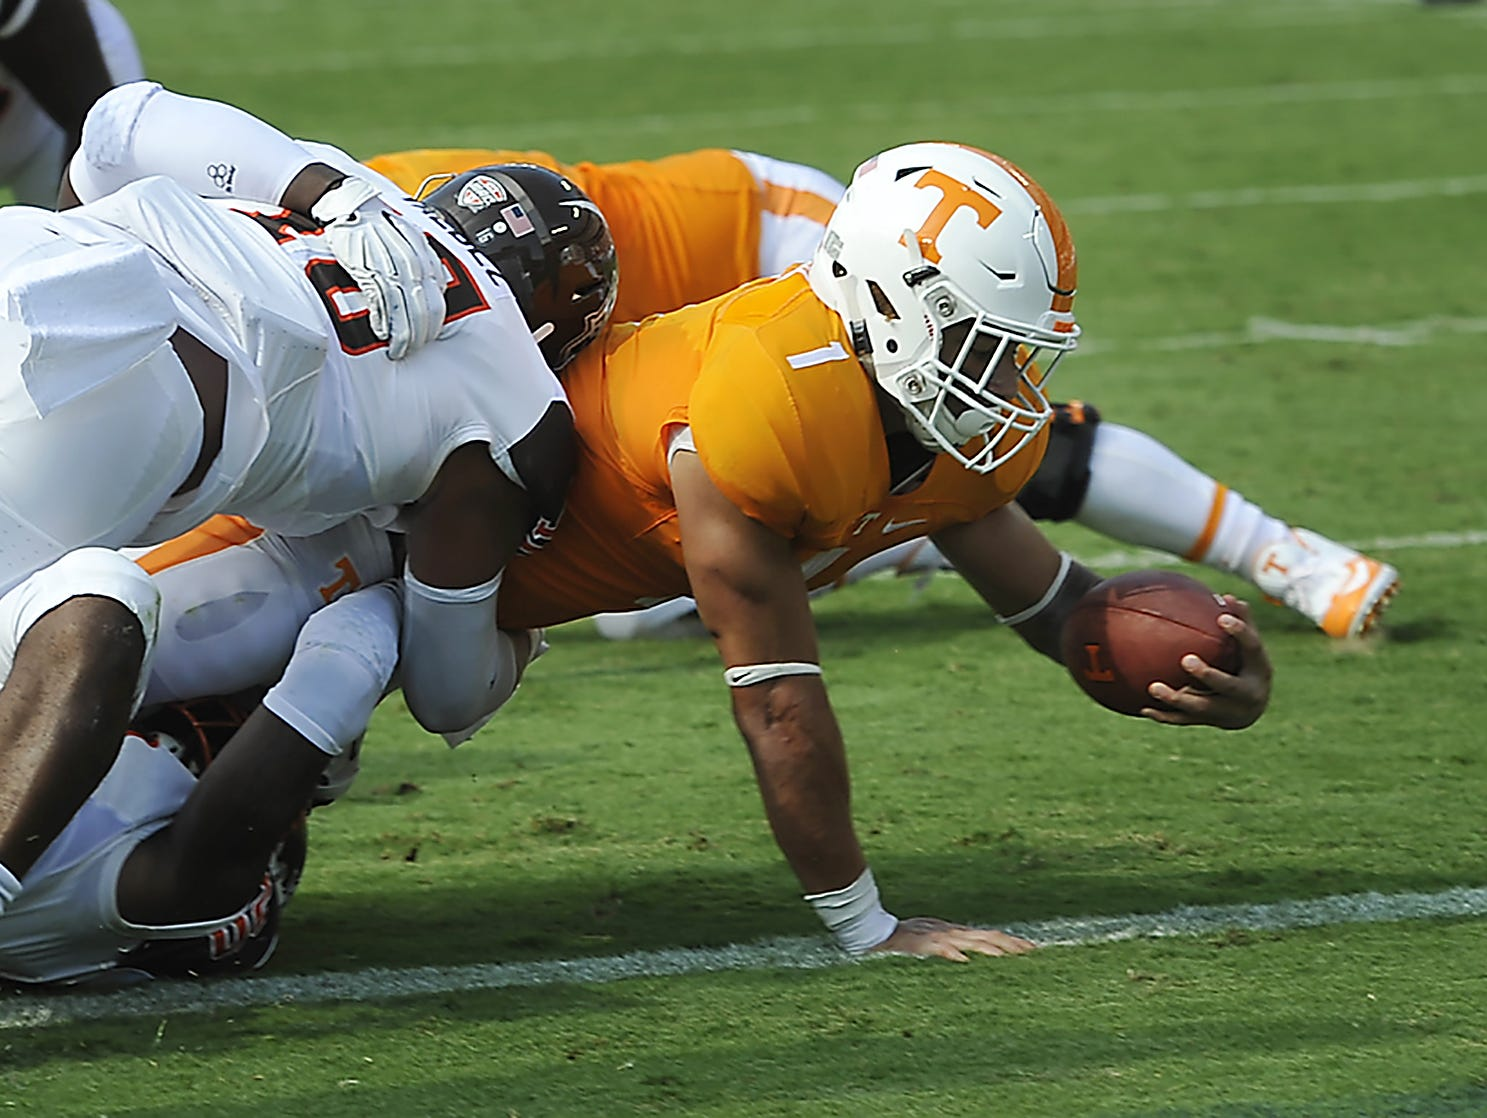 Tennessee running back Jalen Hurd (1) dives in for a touchdown past Bowling Green linebacker Austin Valdez (16) during the first half at Nissan Stadium in September.